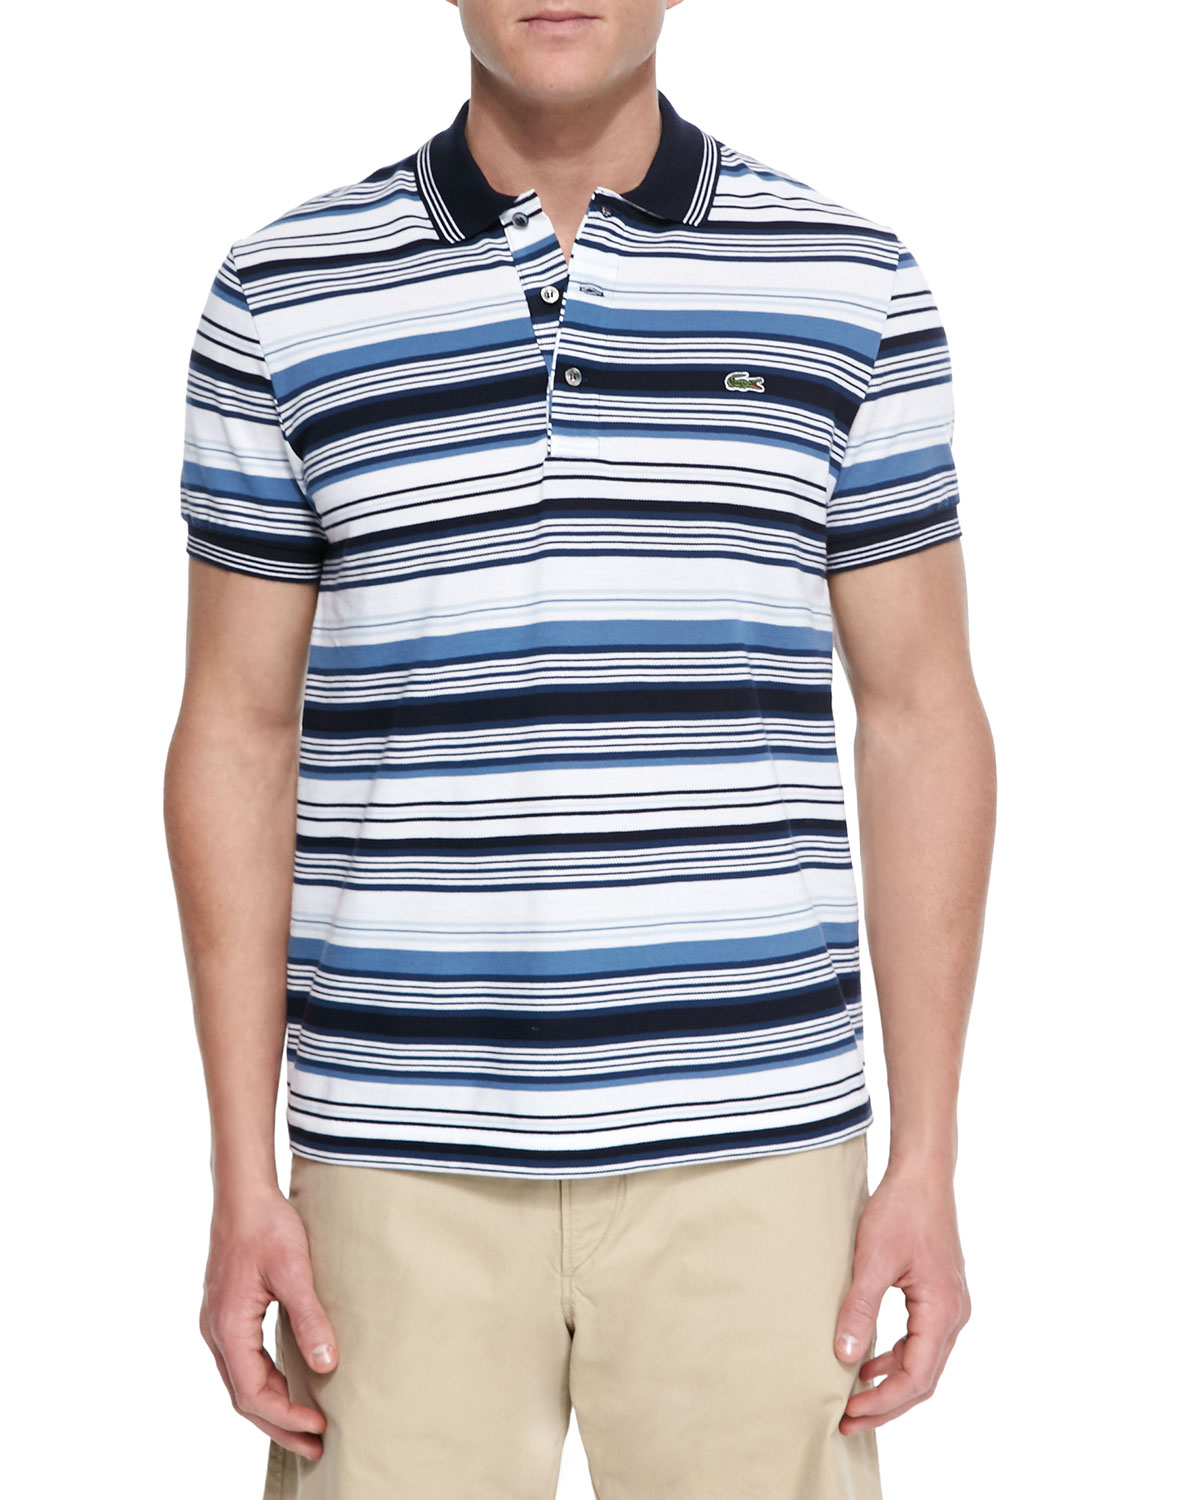 Lacoste pique knit multi stripe polo shirt in multicolor for Lacoste stripe pique polo shirt